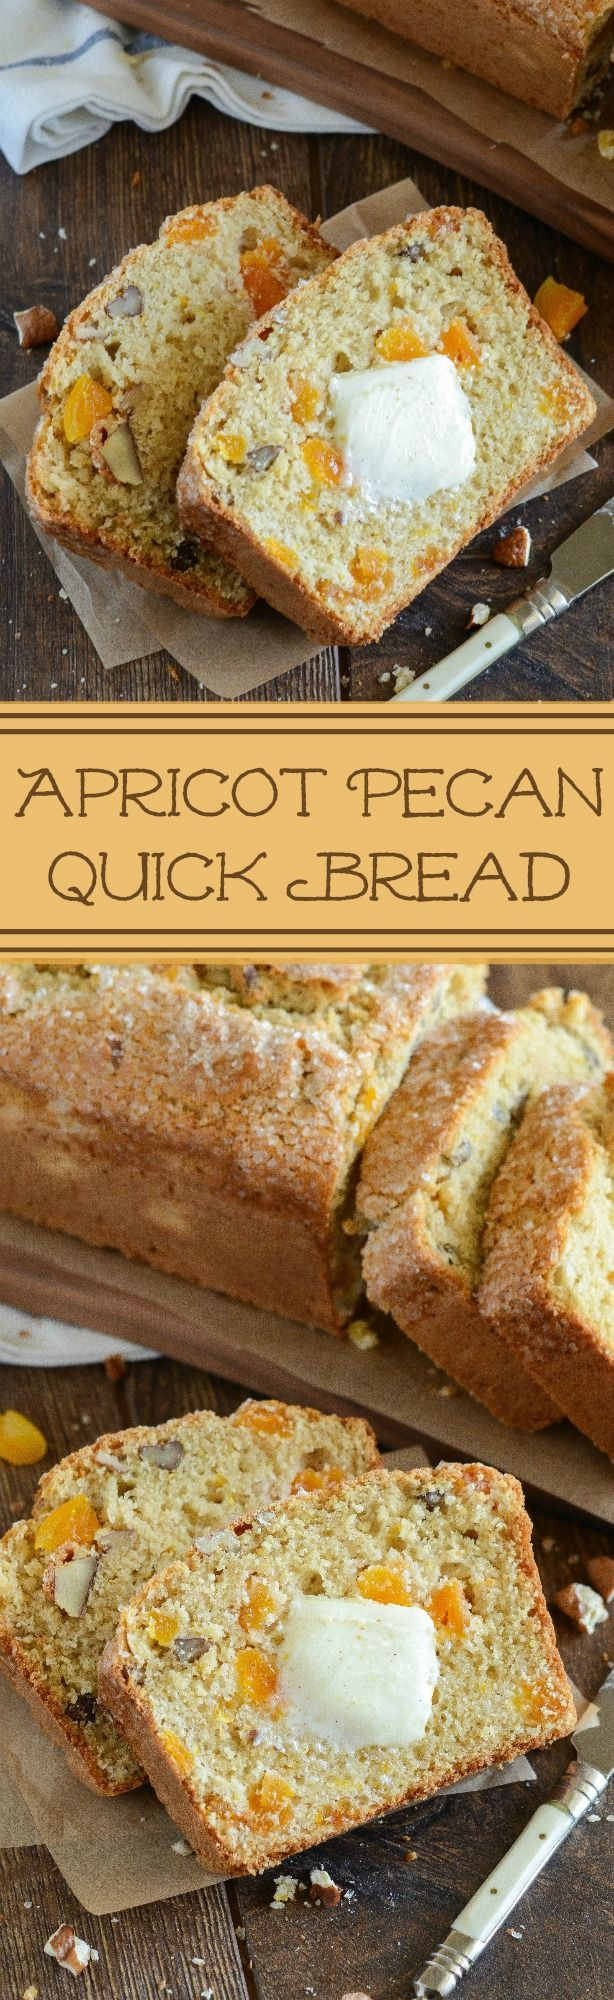 Apricot Pecan Bread! Easy buttermilk quick bread loaded with pecans, dried apricots and orange zest!! Yum!! Recipe by the novice Chef featured on dixiecrystals.com !